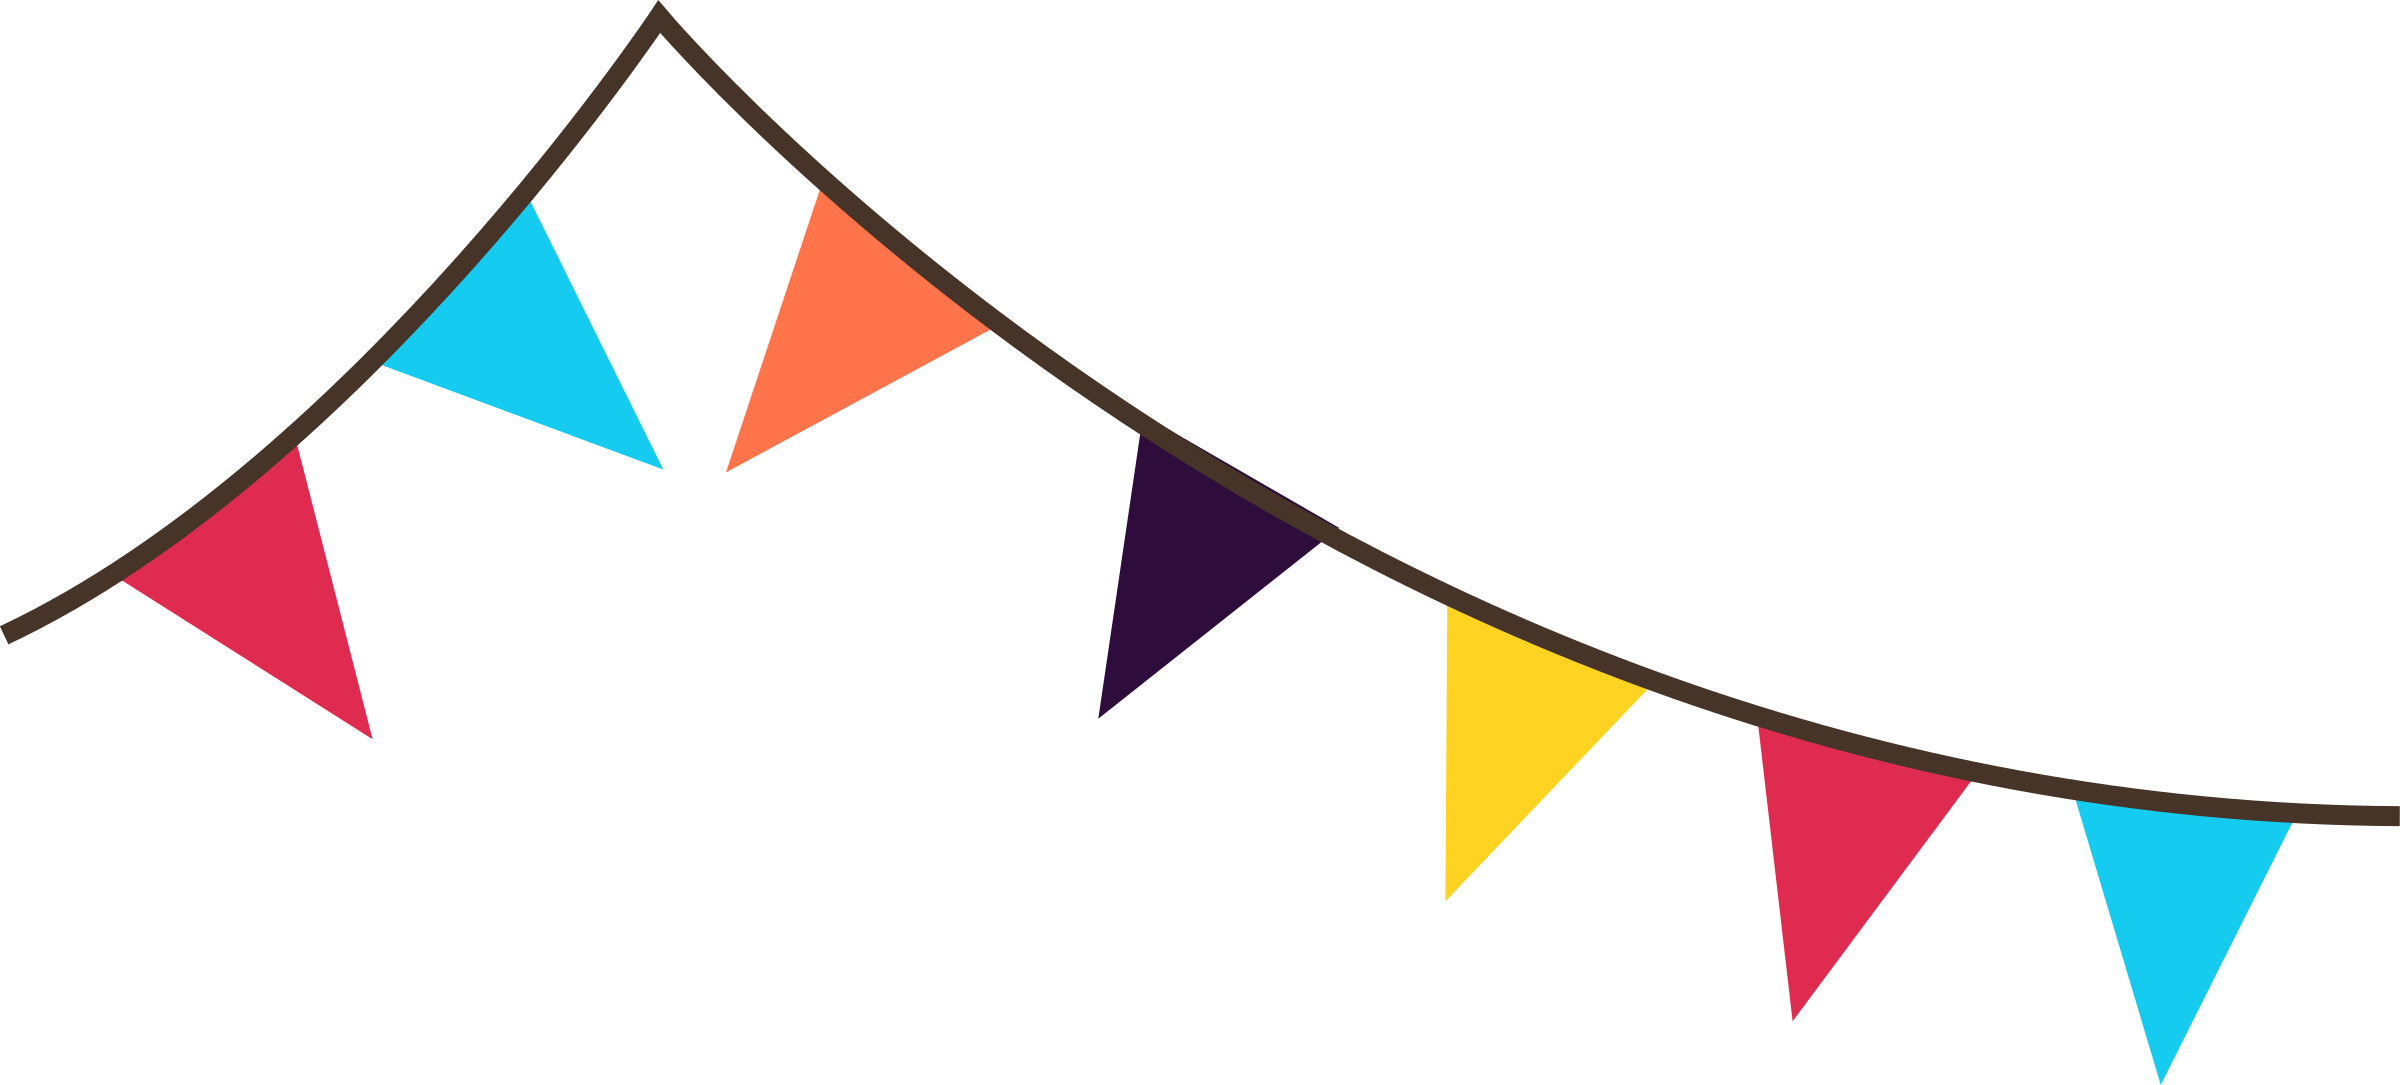 flags png